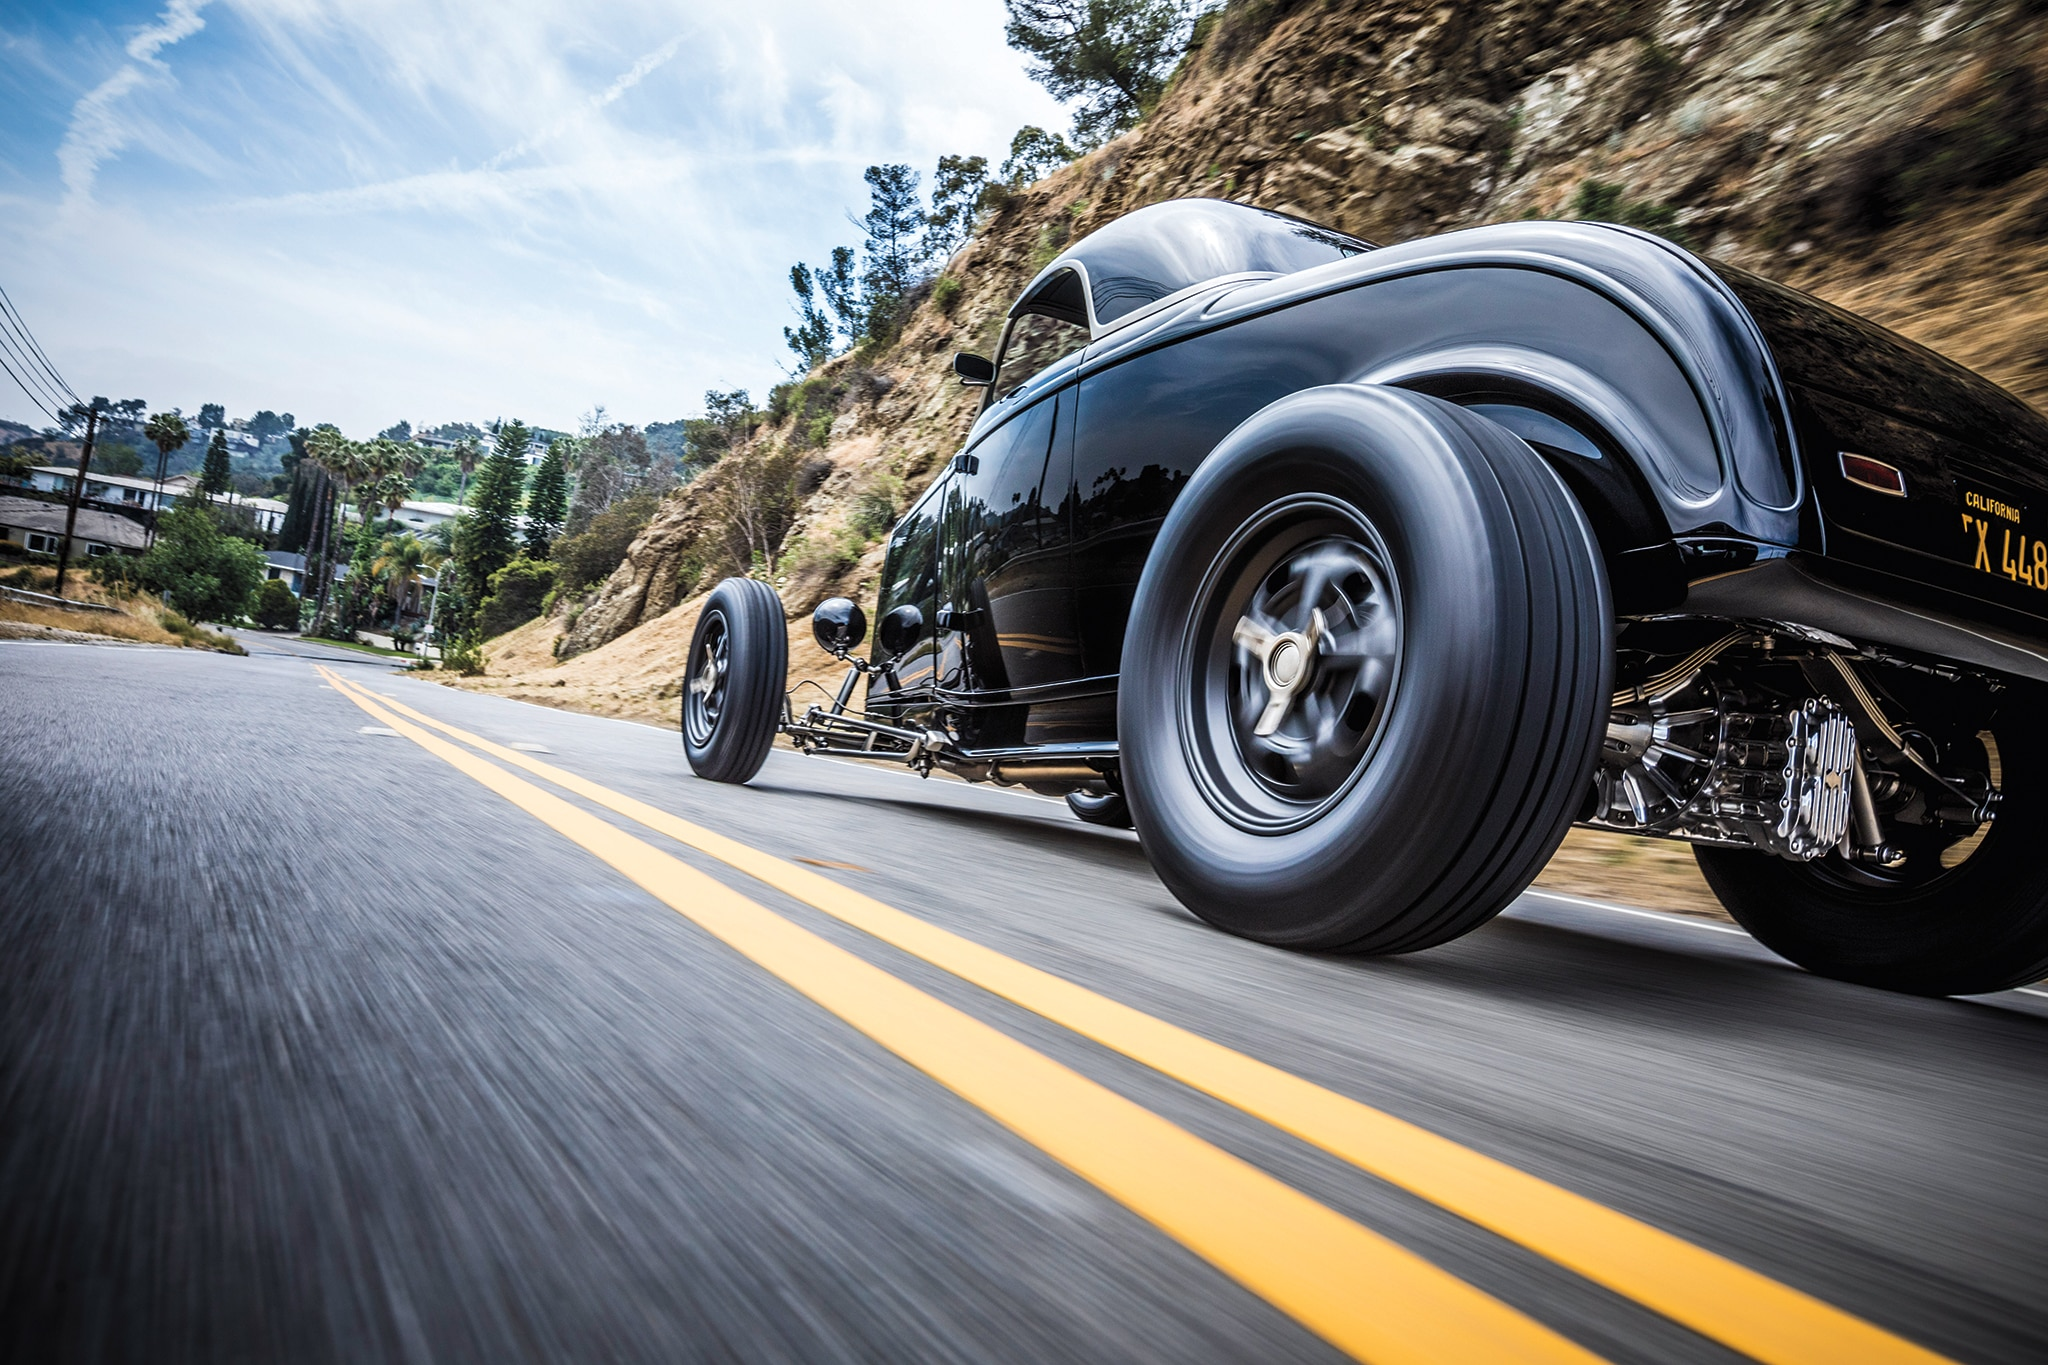 The Nickel Roadster Is Flawless Hot Rod Royalty